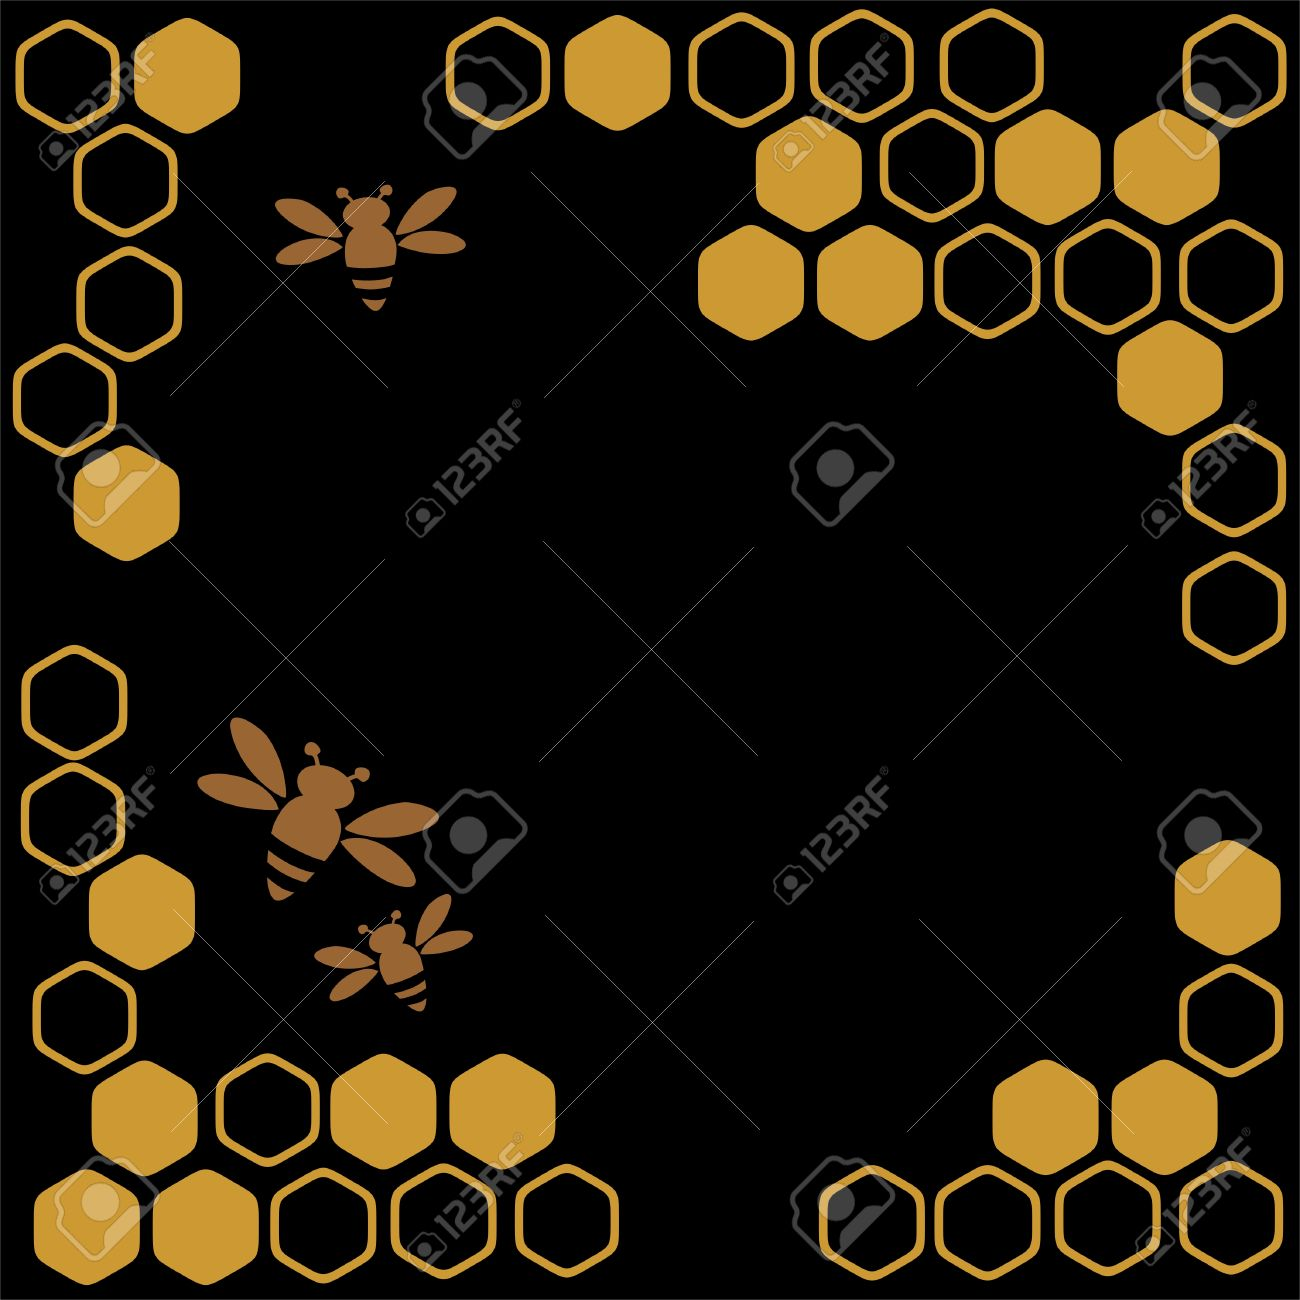 Stylized Bees And Honey On A Black Background Stock Vector